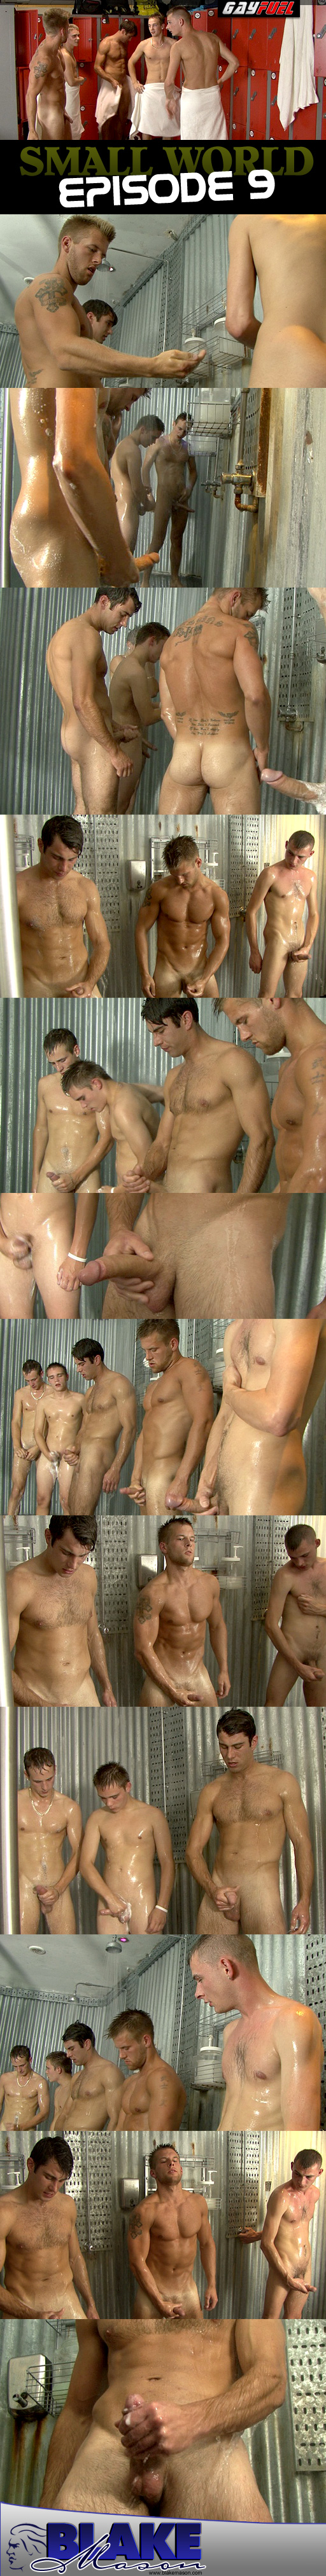 Shower Circle Jerk on Blake Mason.